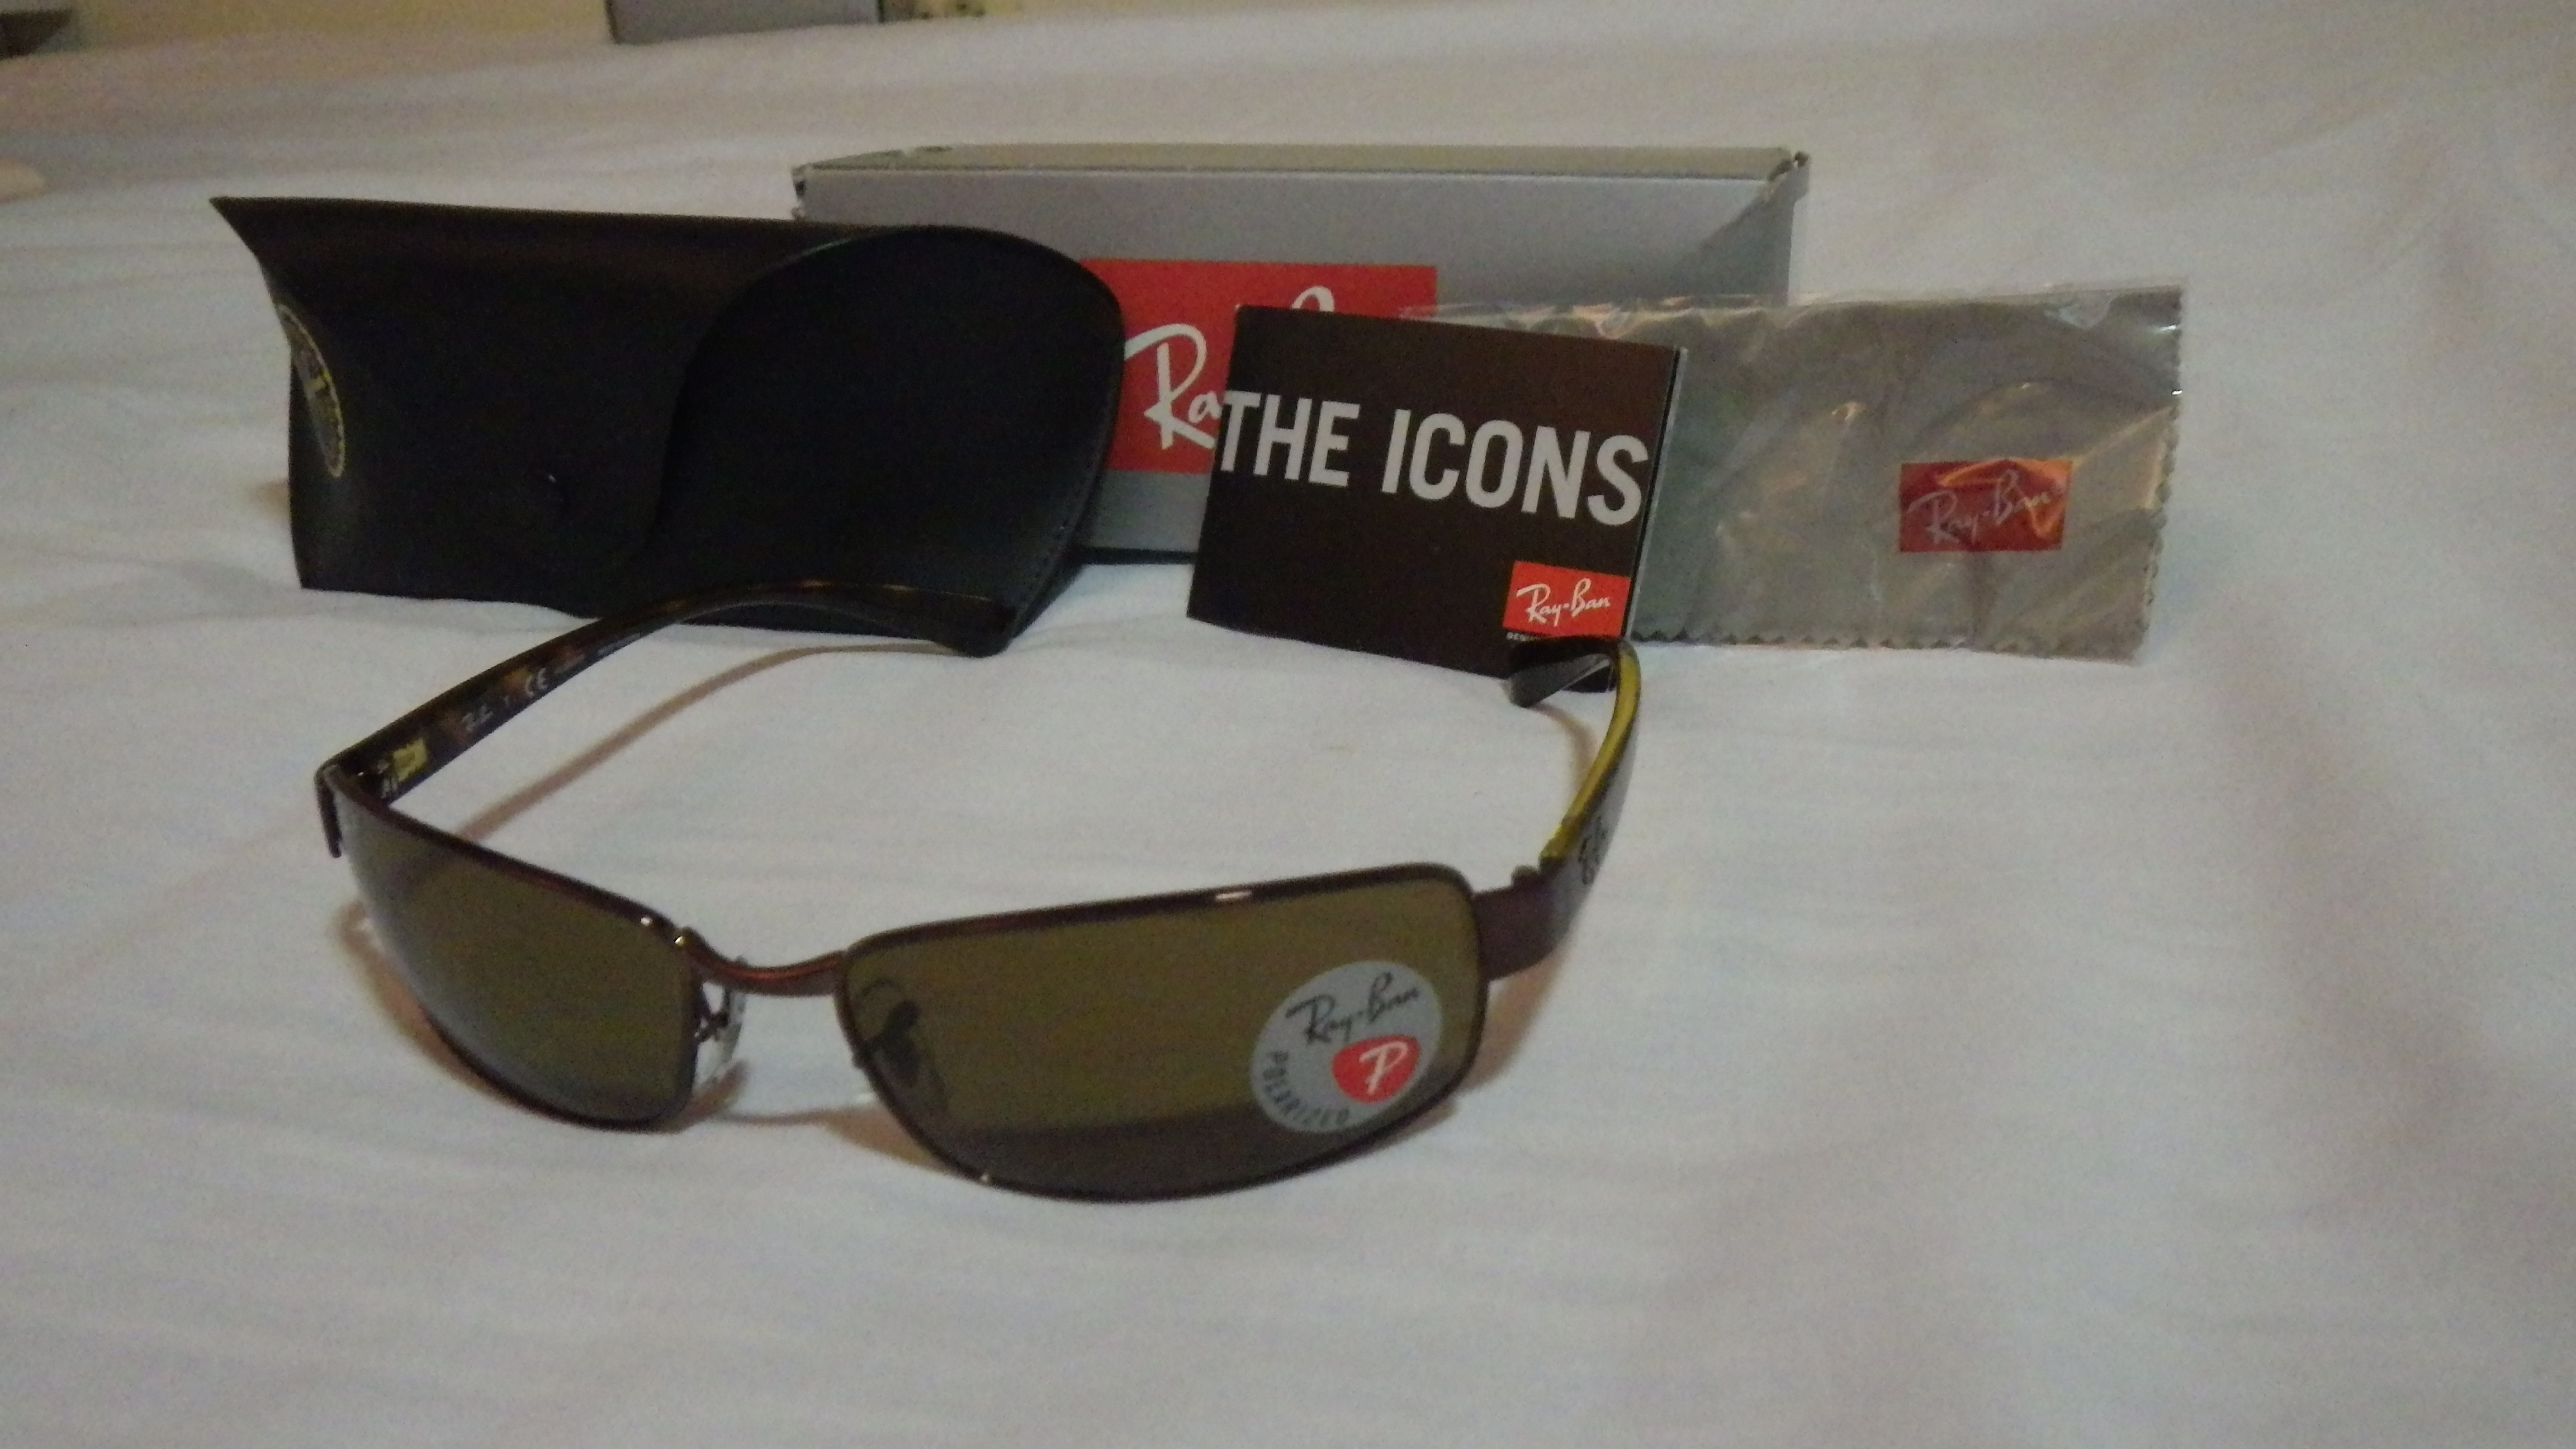 b27f517adc ... 2509 black red carbon fiber eyeglasses amazon clothing 41563 c89ae   official store ray ban tech 8302 rb 8302 b 15 brown lenses made in italy  size